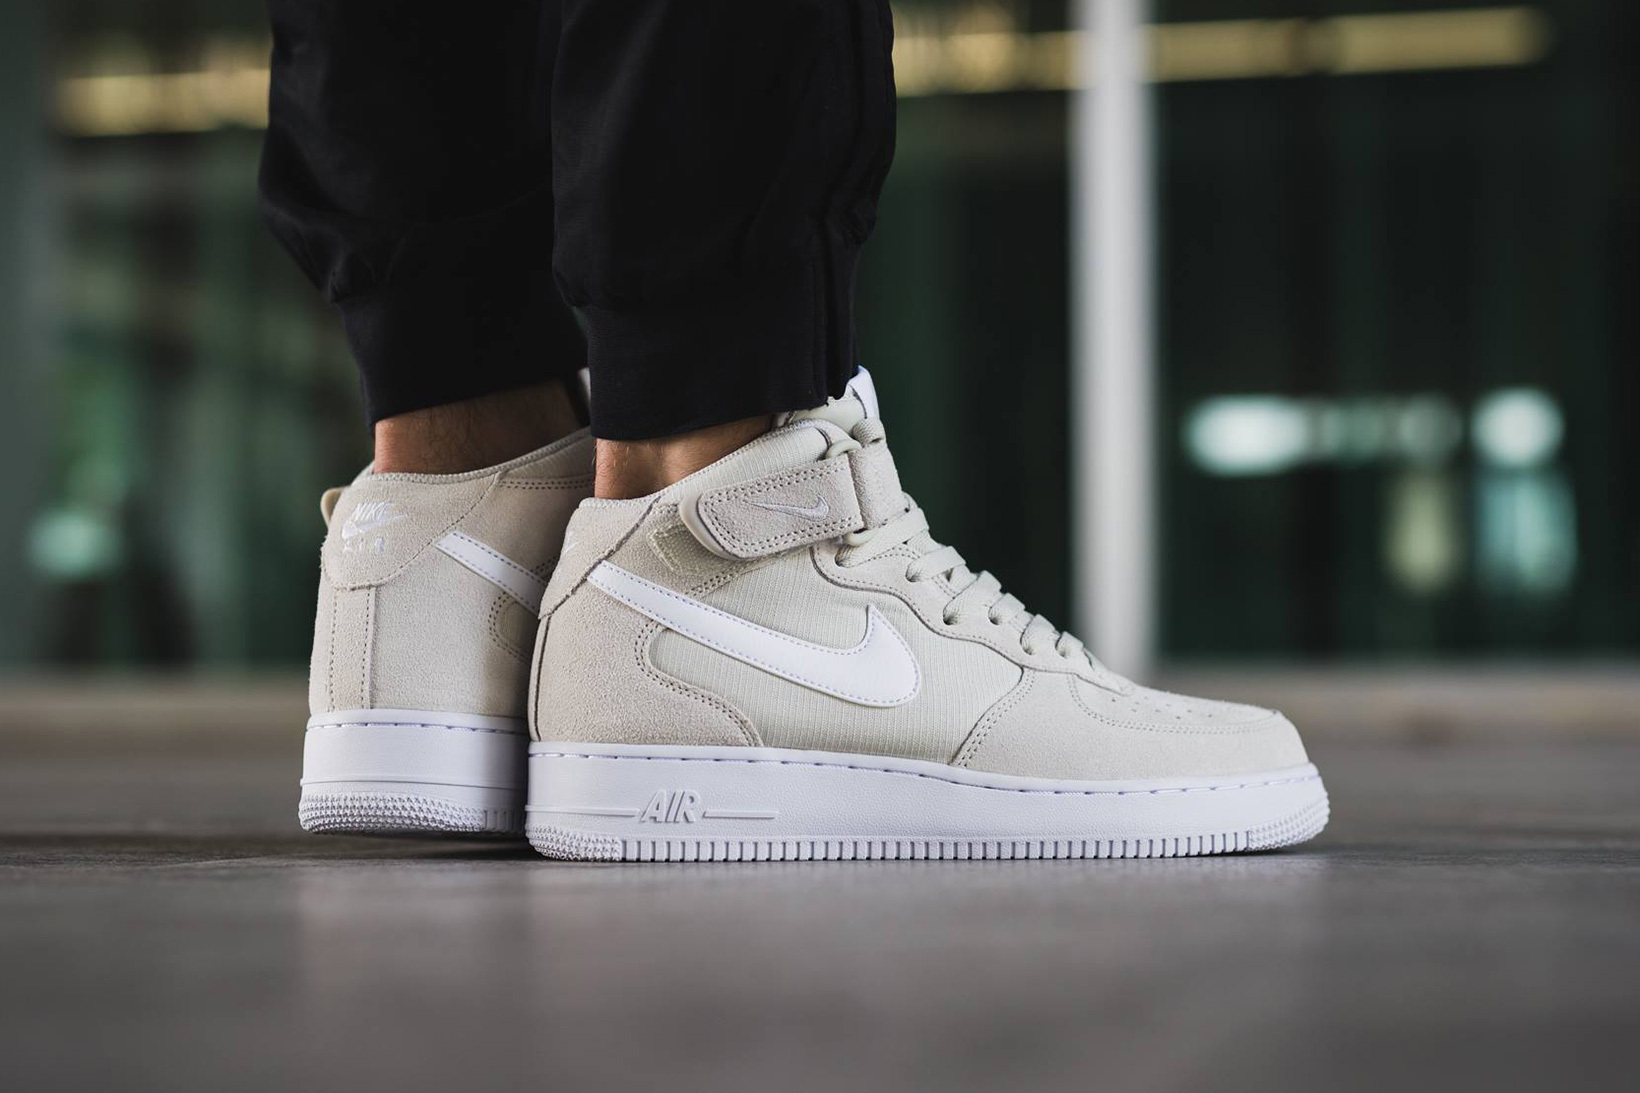 new styles 1183a d2992 air force 1 mid,nike air force 1 mid junior blanc